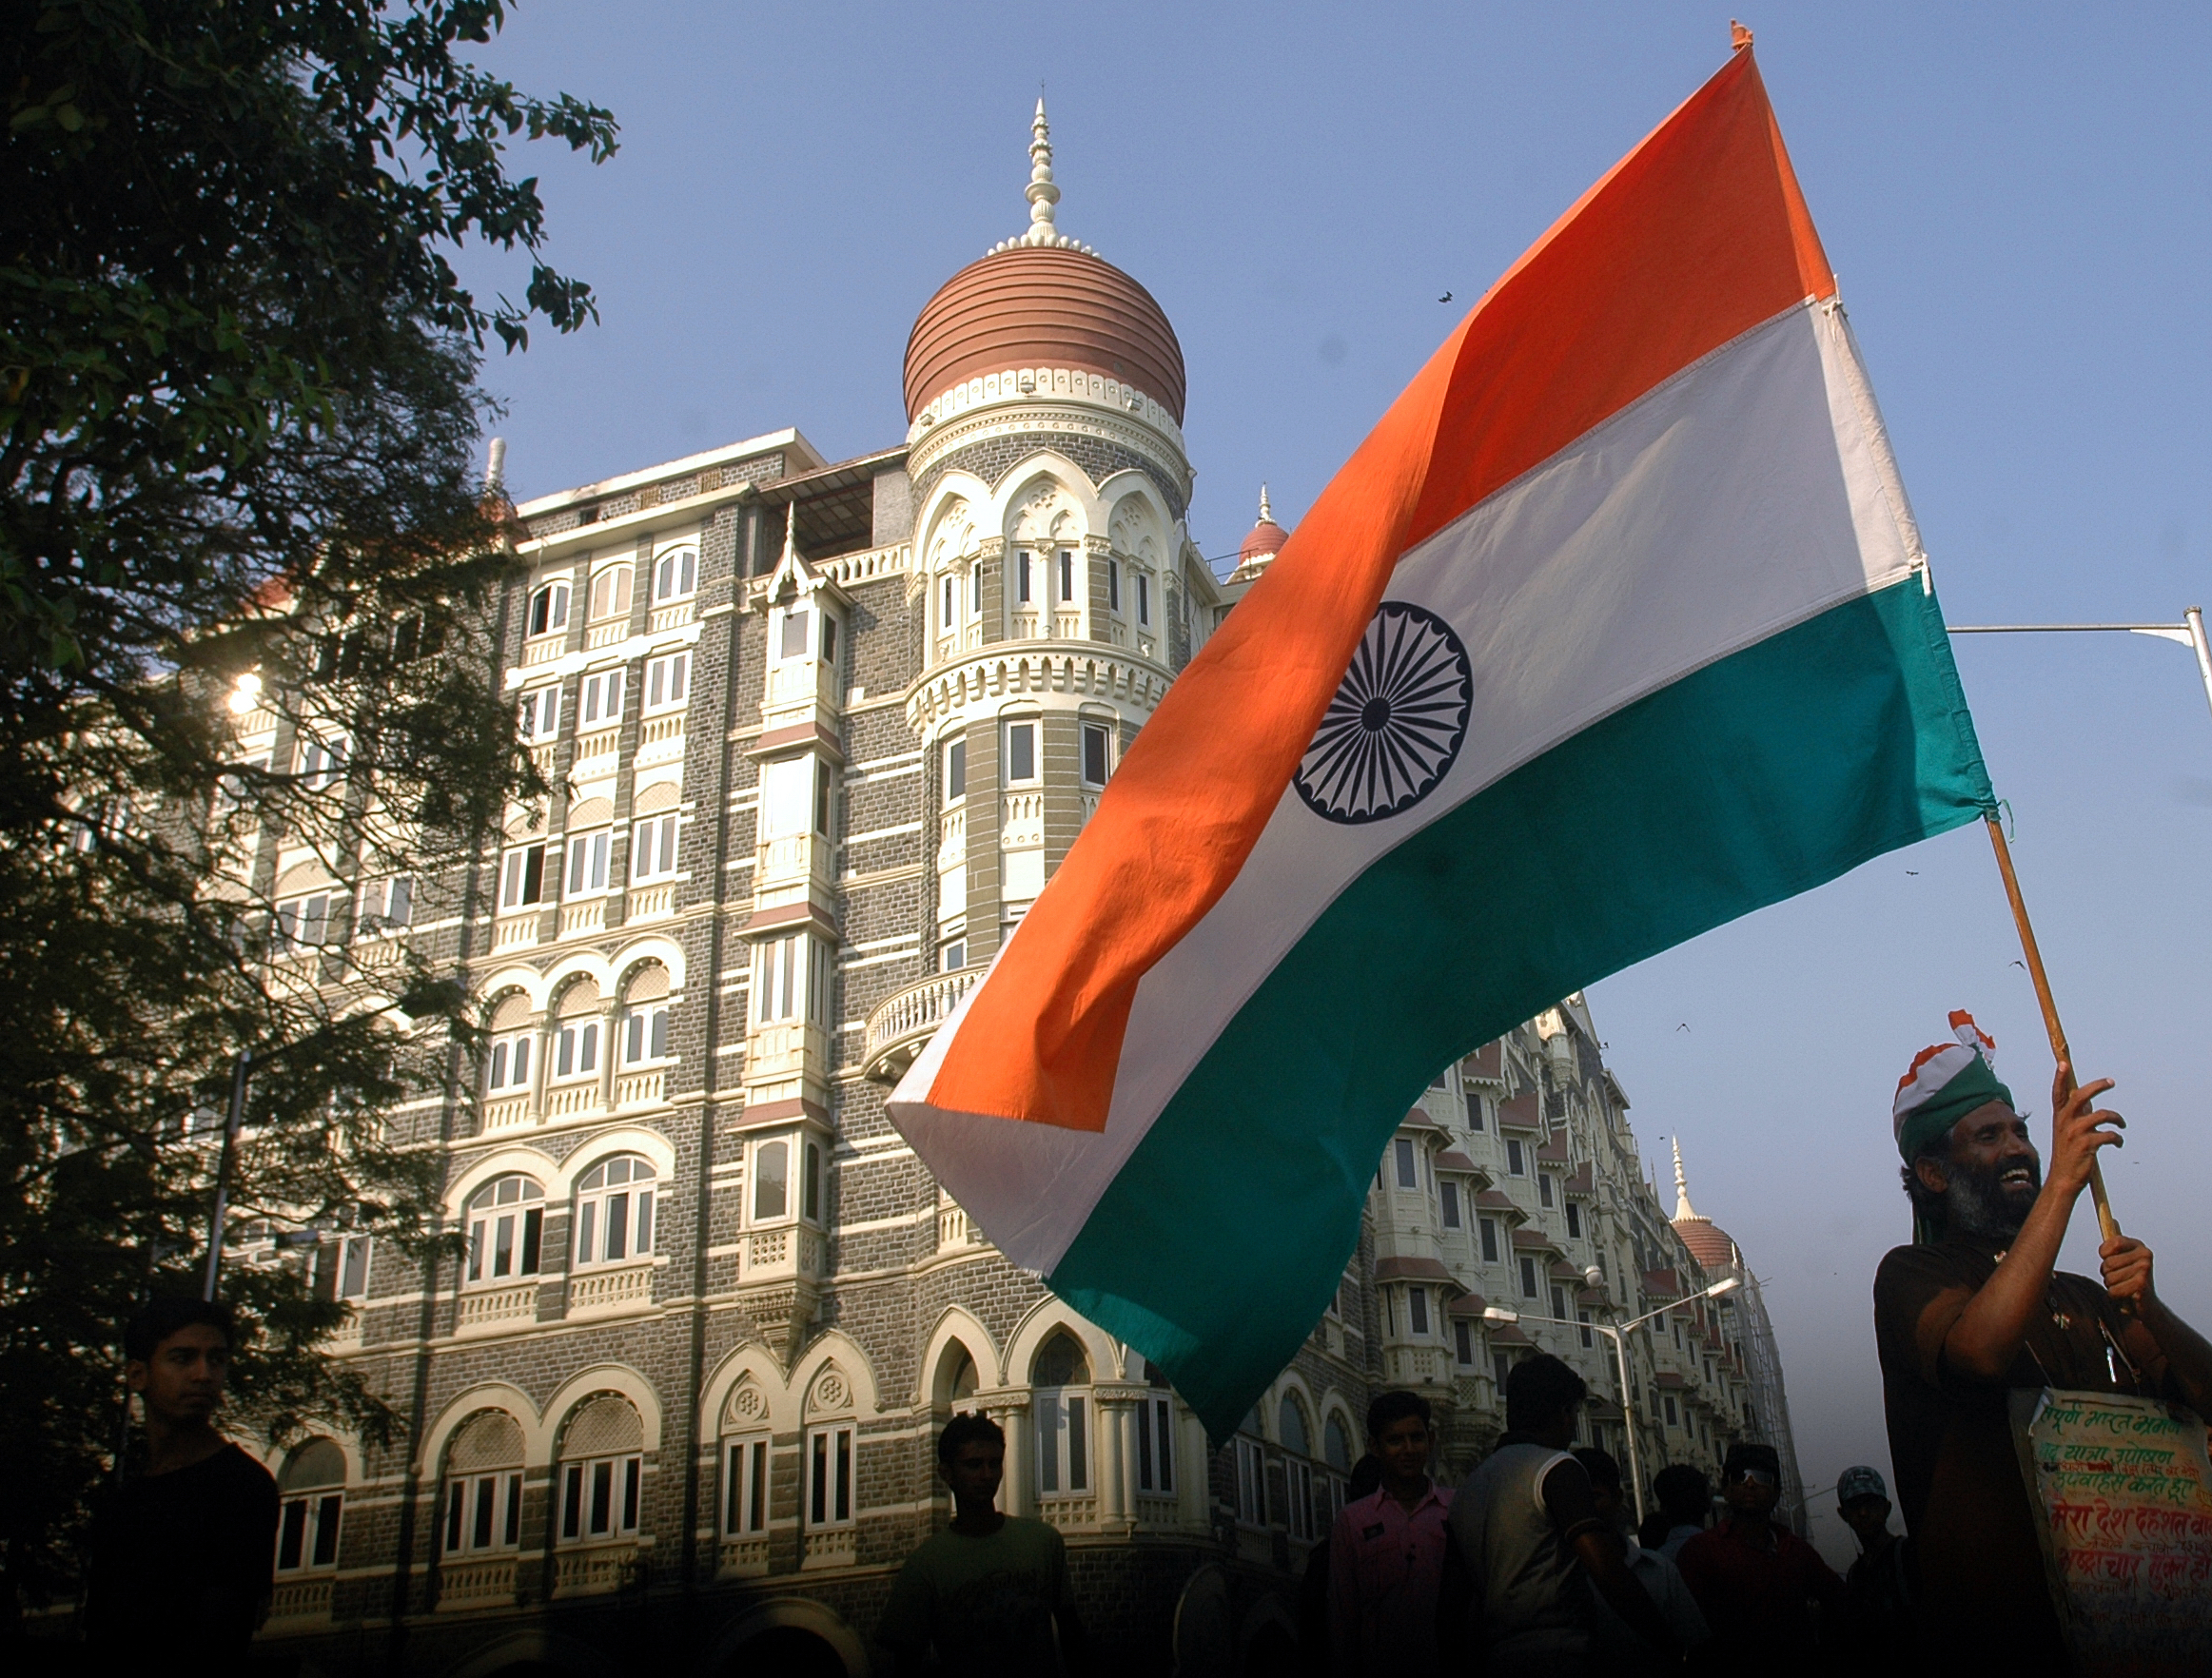 The Taj Mahal Palace hotel now stands as a symbol of endurance and in some sense embodies the Spirit of Mumbai